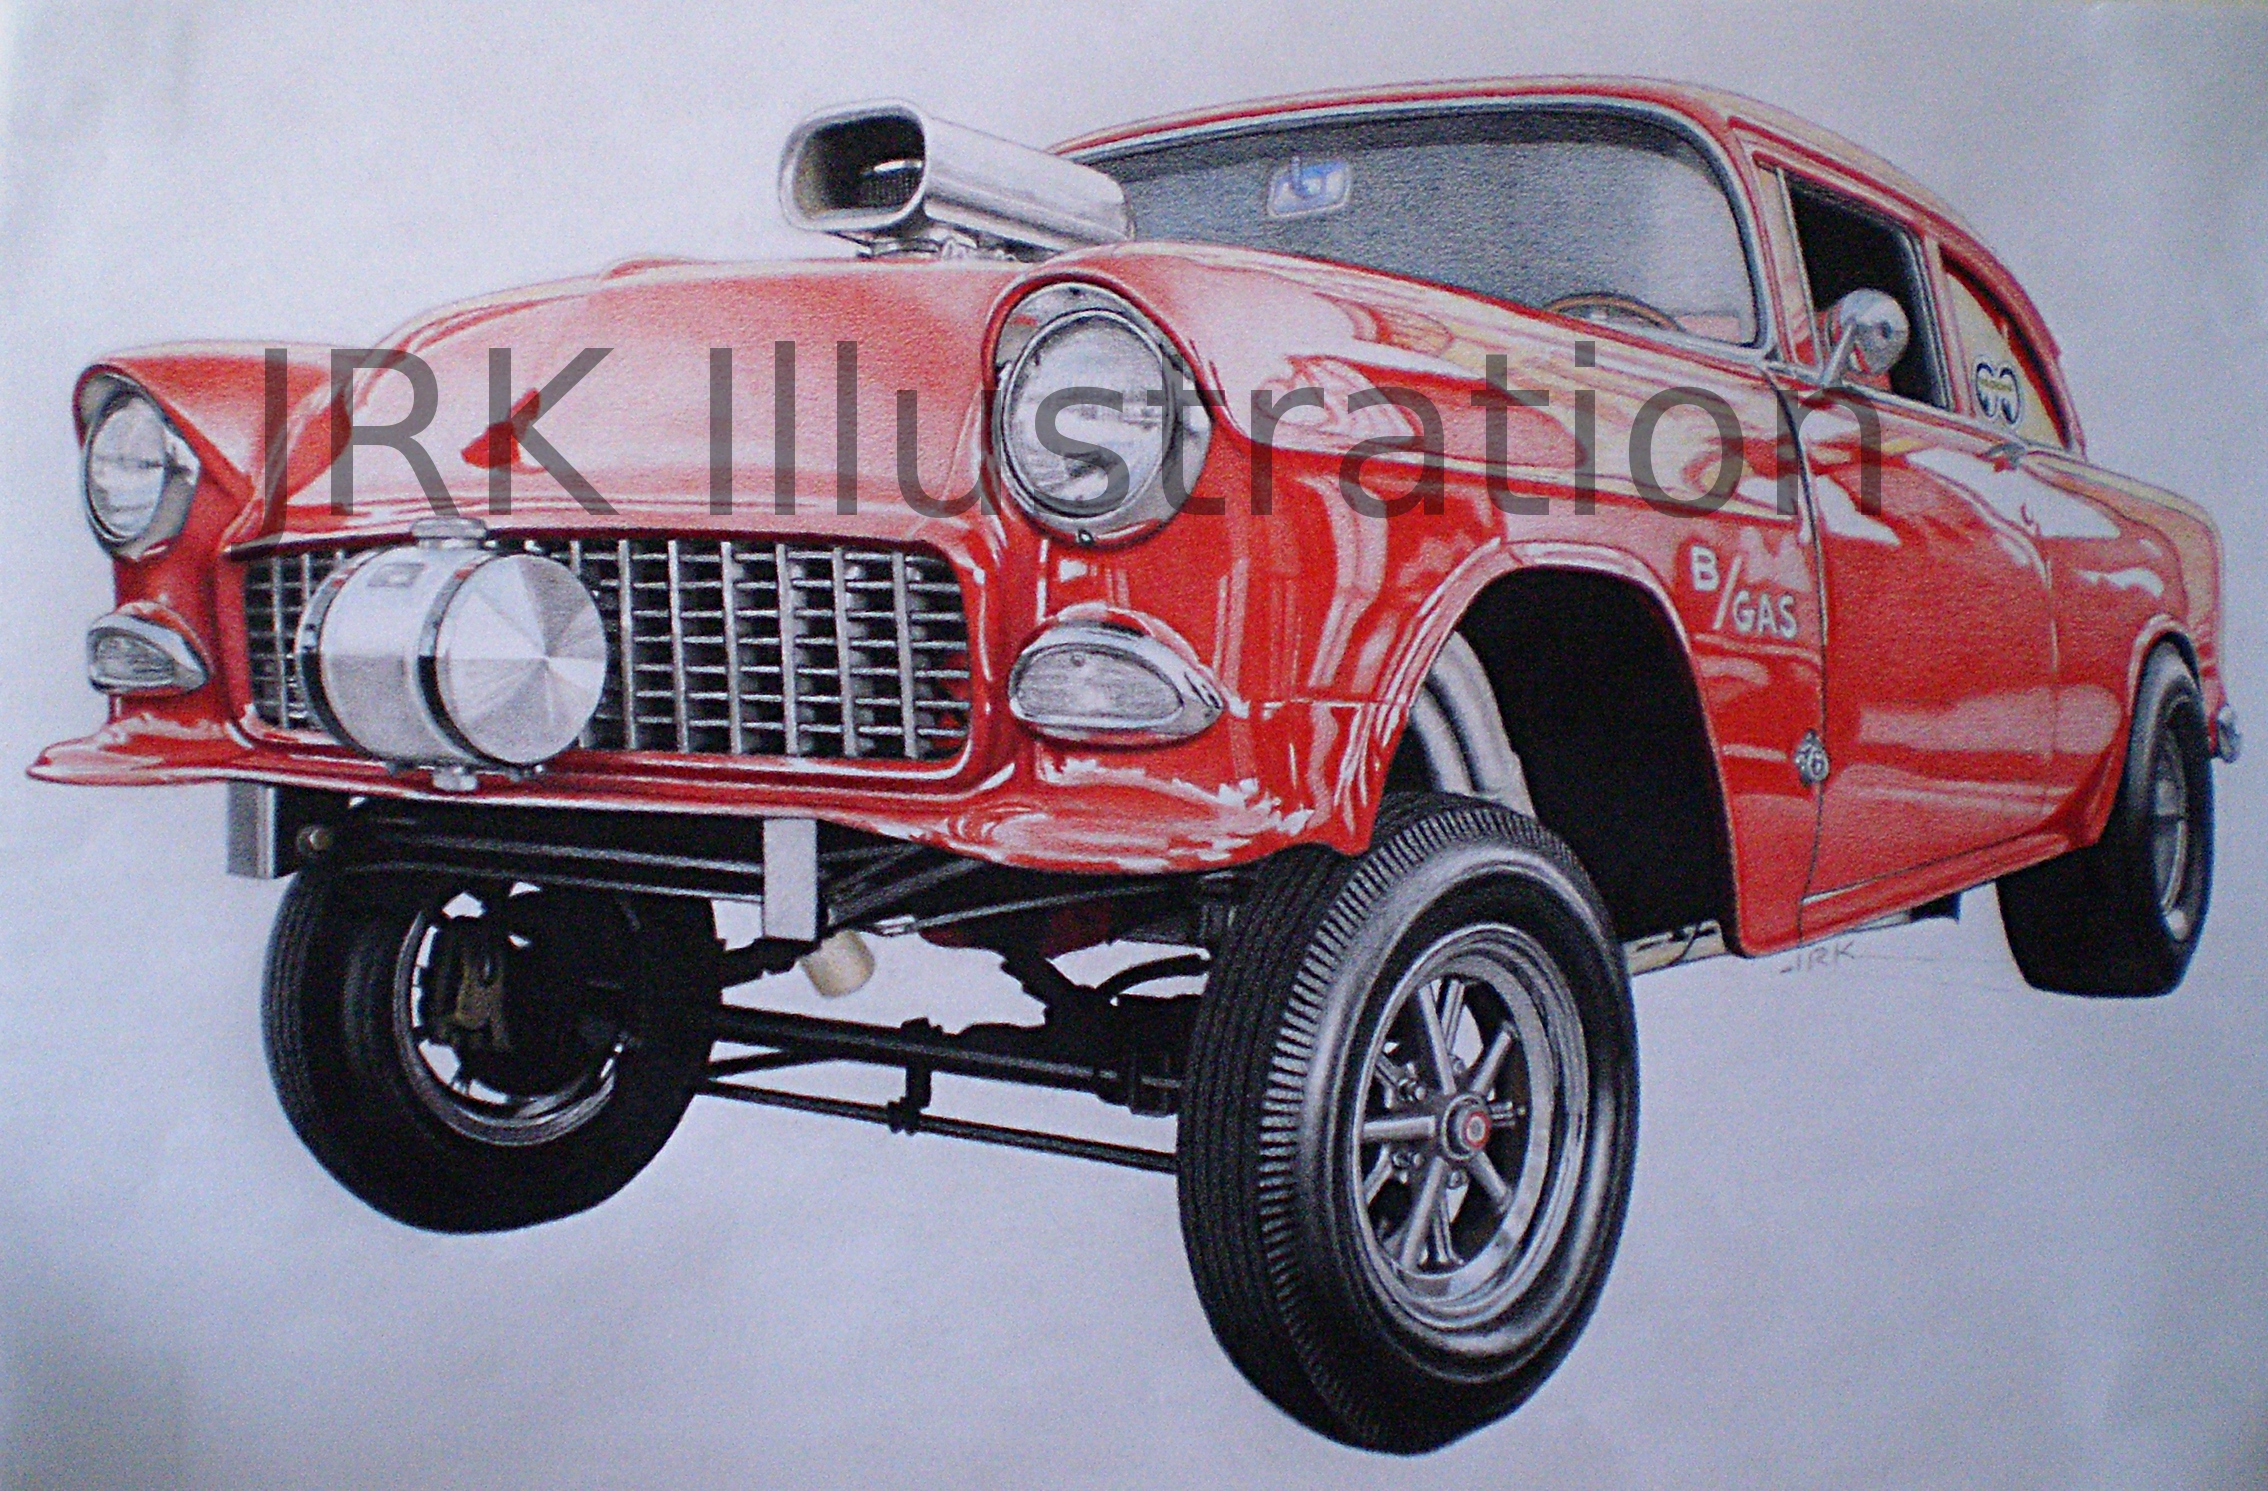 Click image for larger version  Name:ChevyGasserA.JPG Views:146 Size:1.94 MB ID:54915